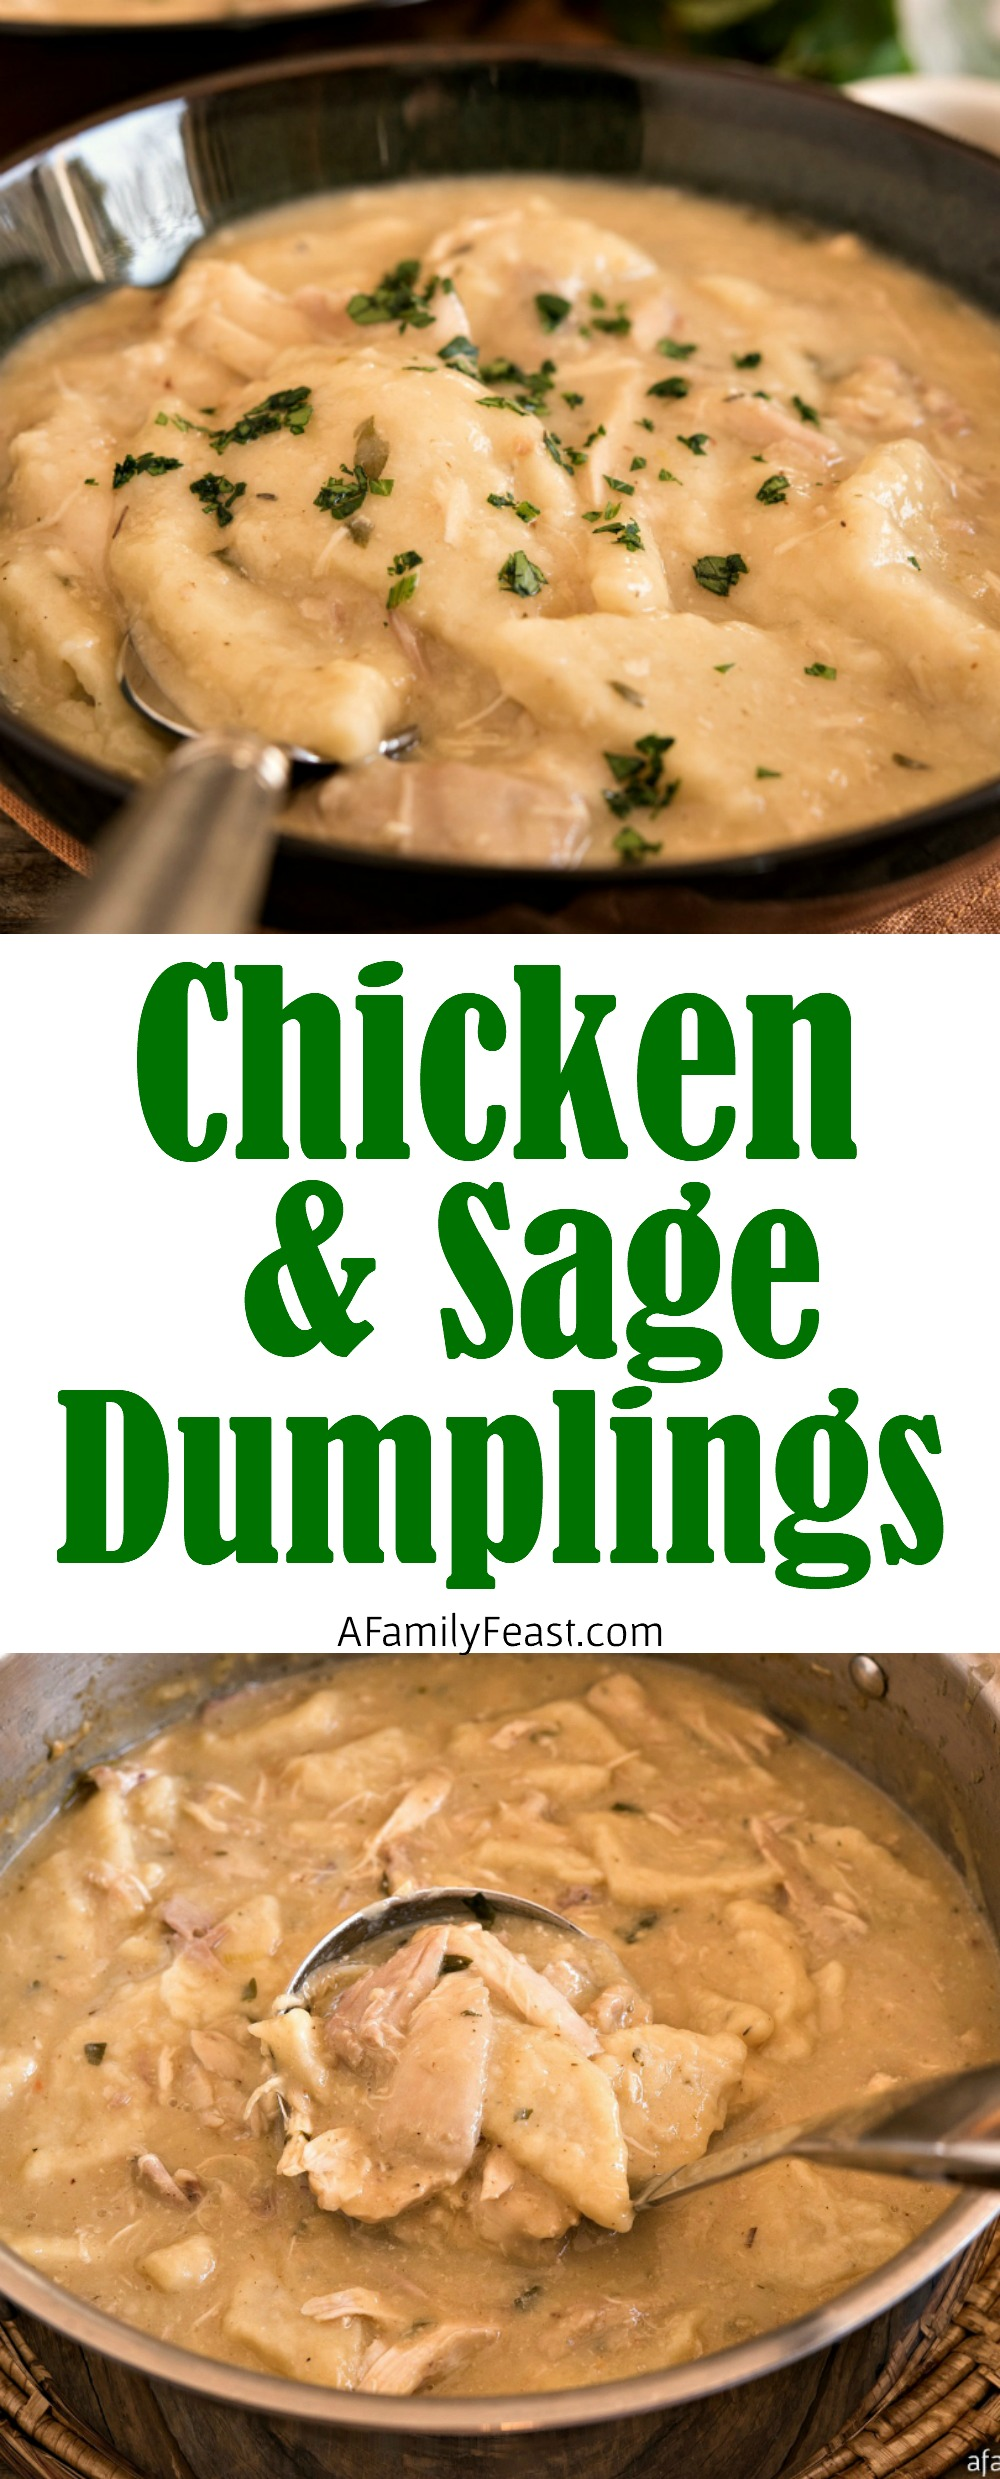 Chicken with Sage Dumplings is the ultimate, delicious comfort food. Tender chunks of chicken and vegetables, sage-infused dumplings, all smothered in a creamy sauce.